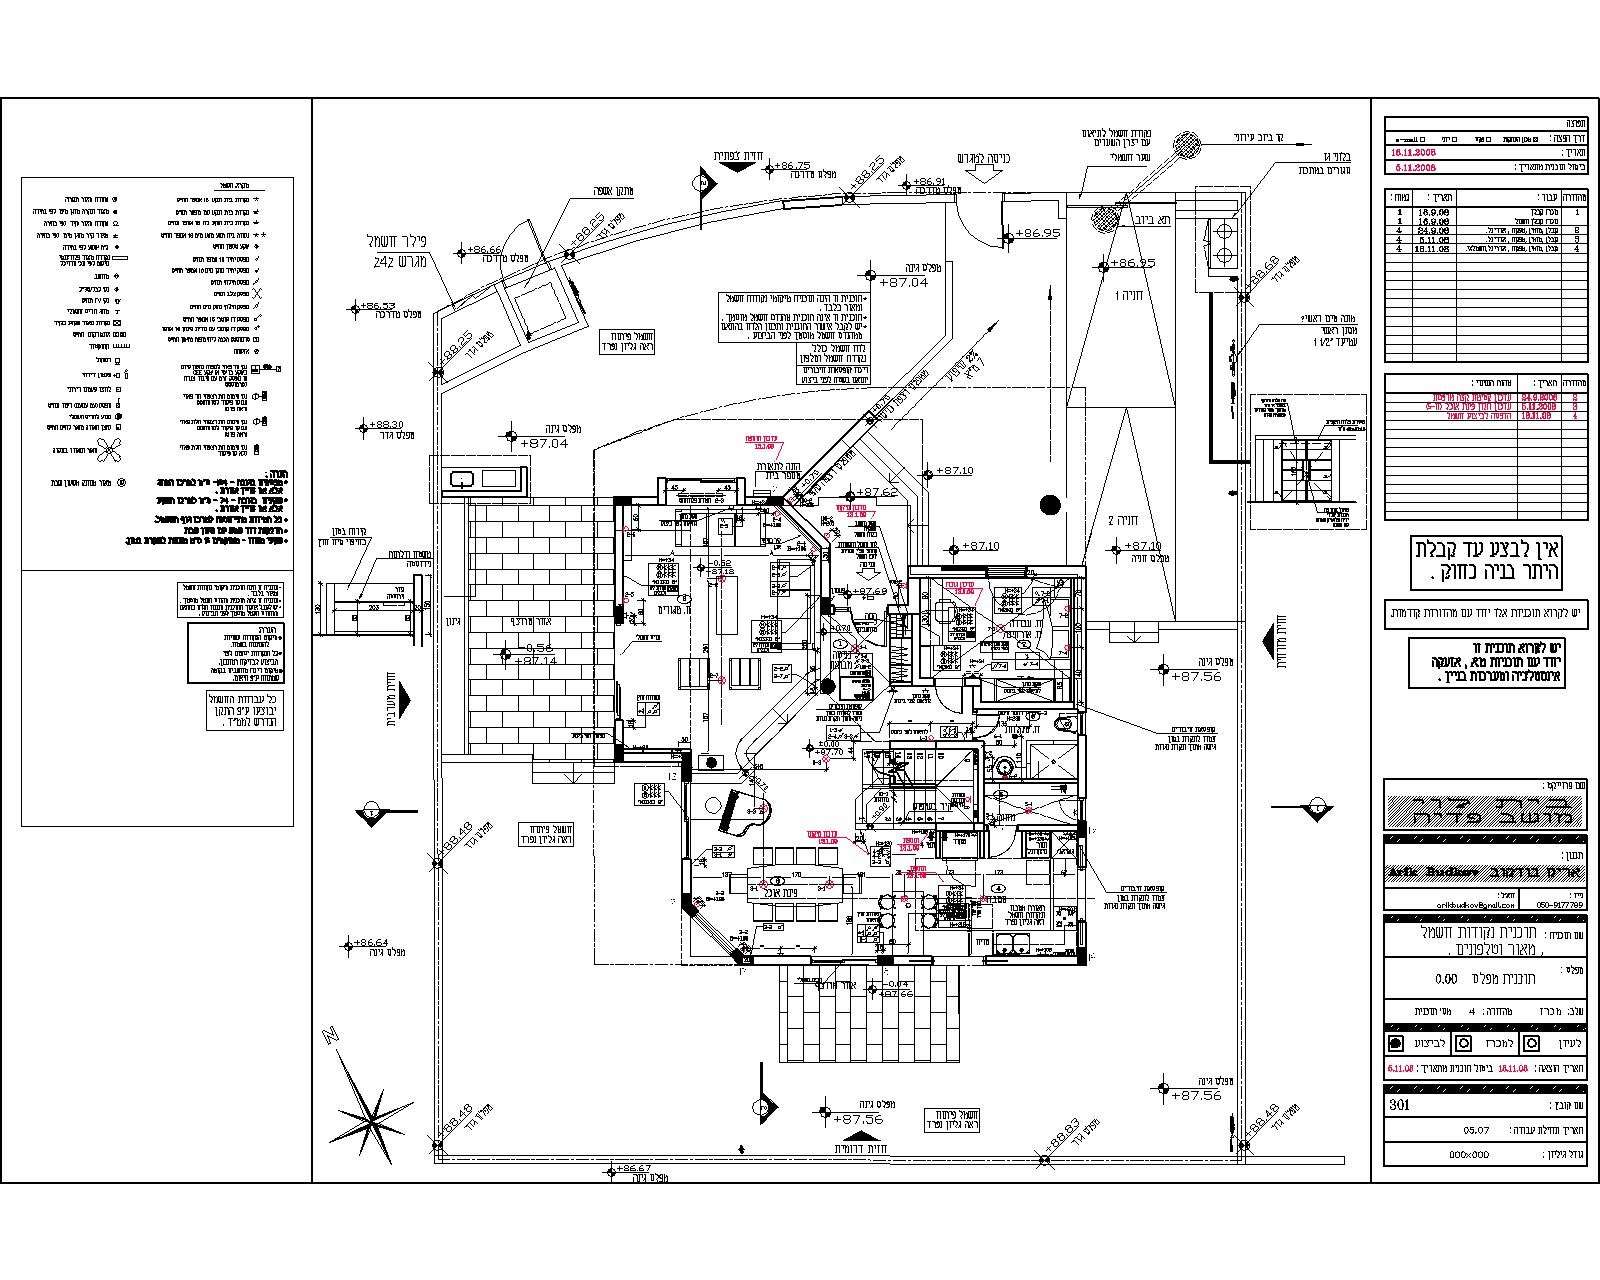 Taskmaster F1f5105n Wiring Diagram Electrical Auto Related With